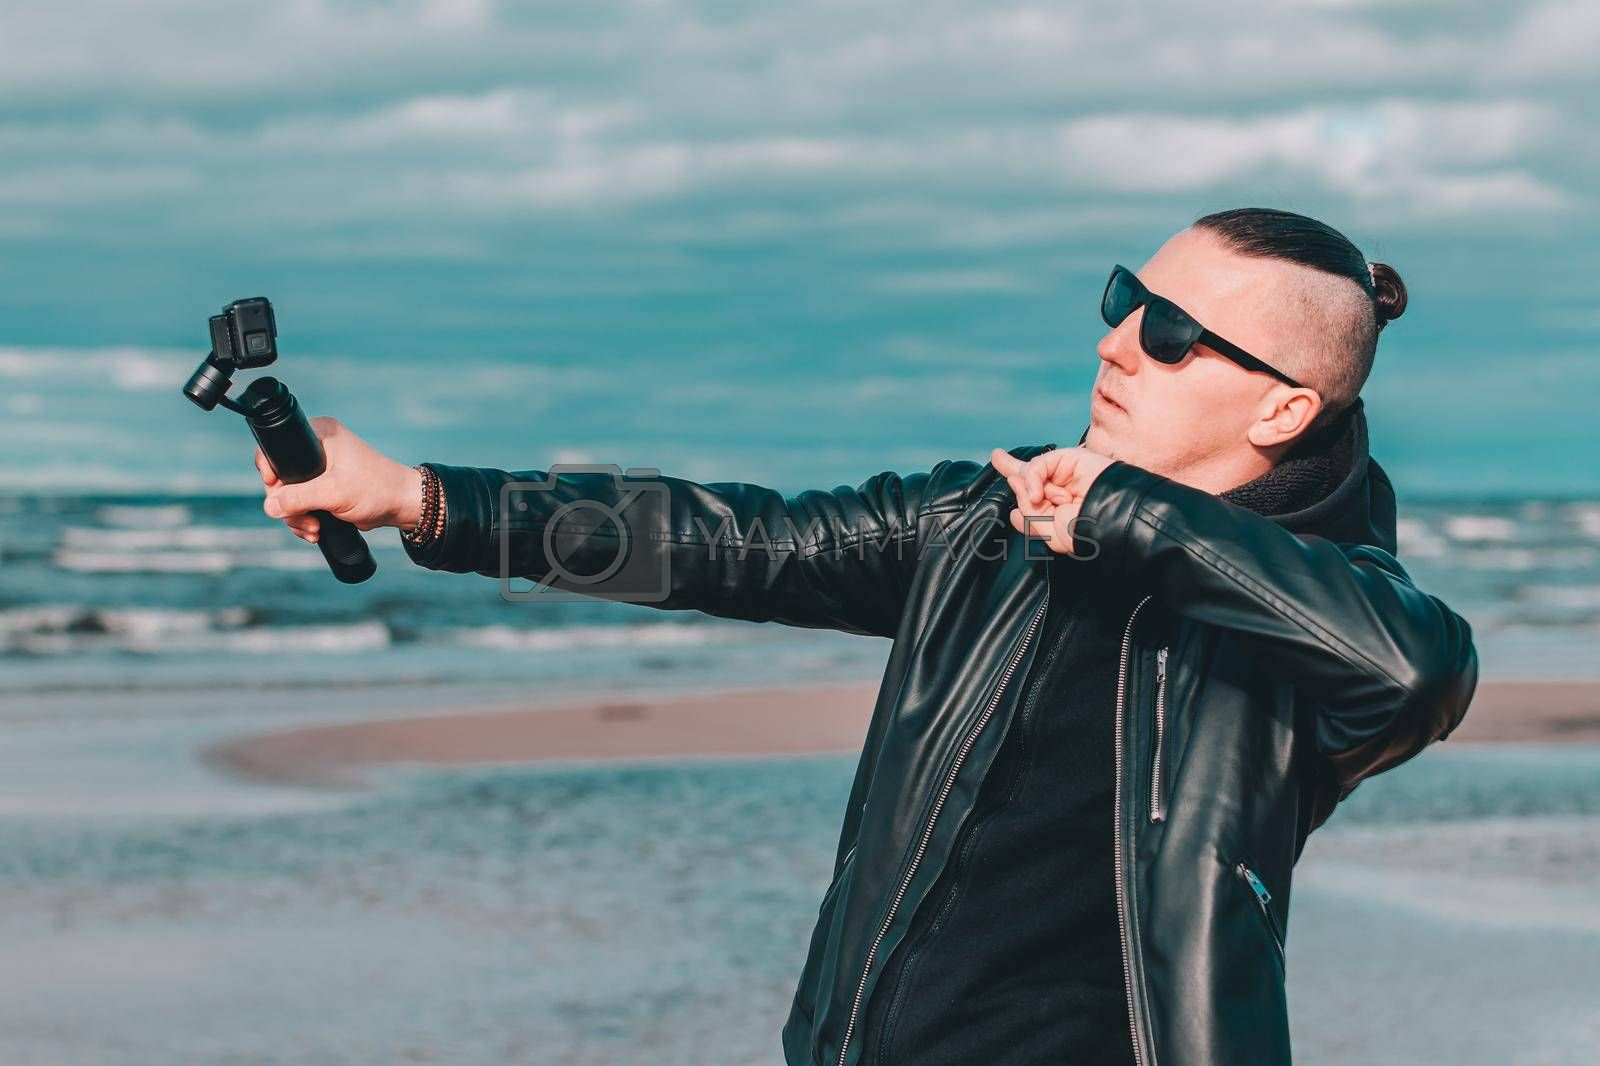 Young Blogger in Sunglasses Making Selfie or Streaming Video at the Beach Using Action Camera with Gimbal Camera Stabilizer. Hipster in Black Clothes Making Photo Against the Sea